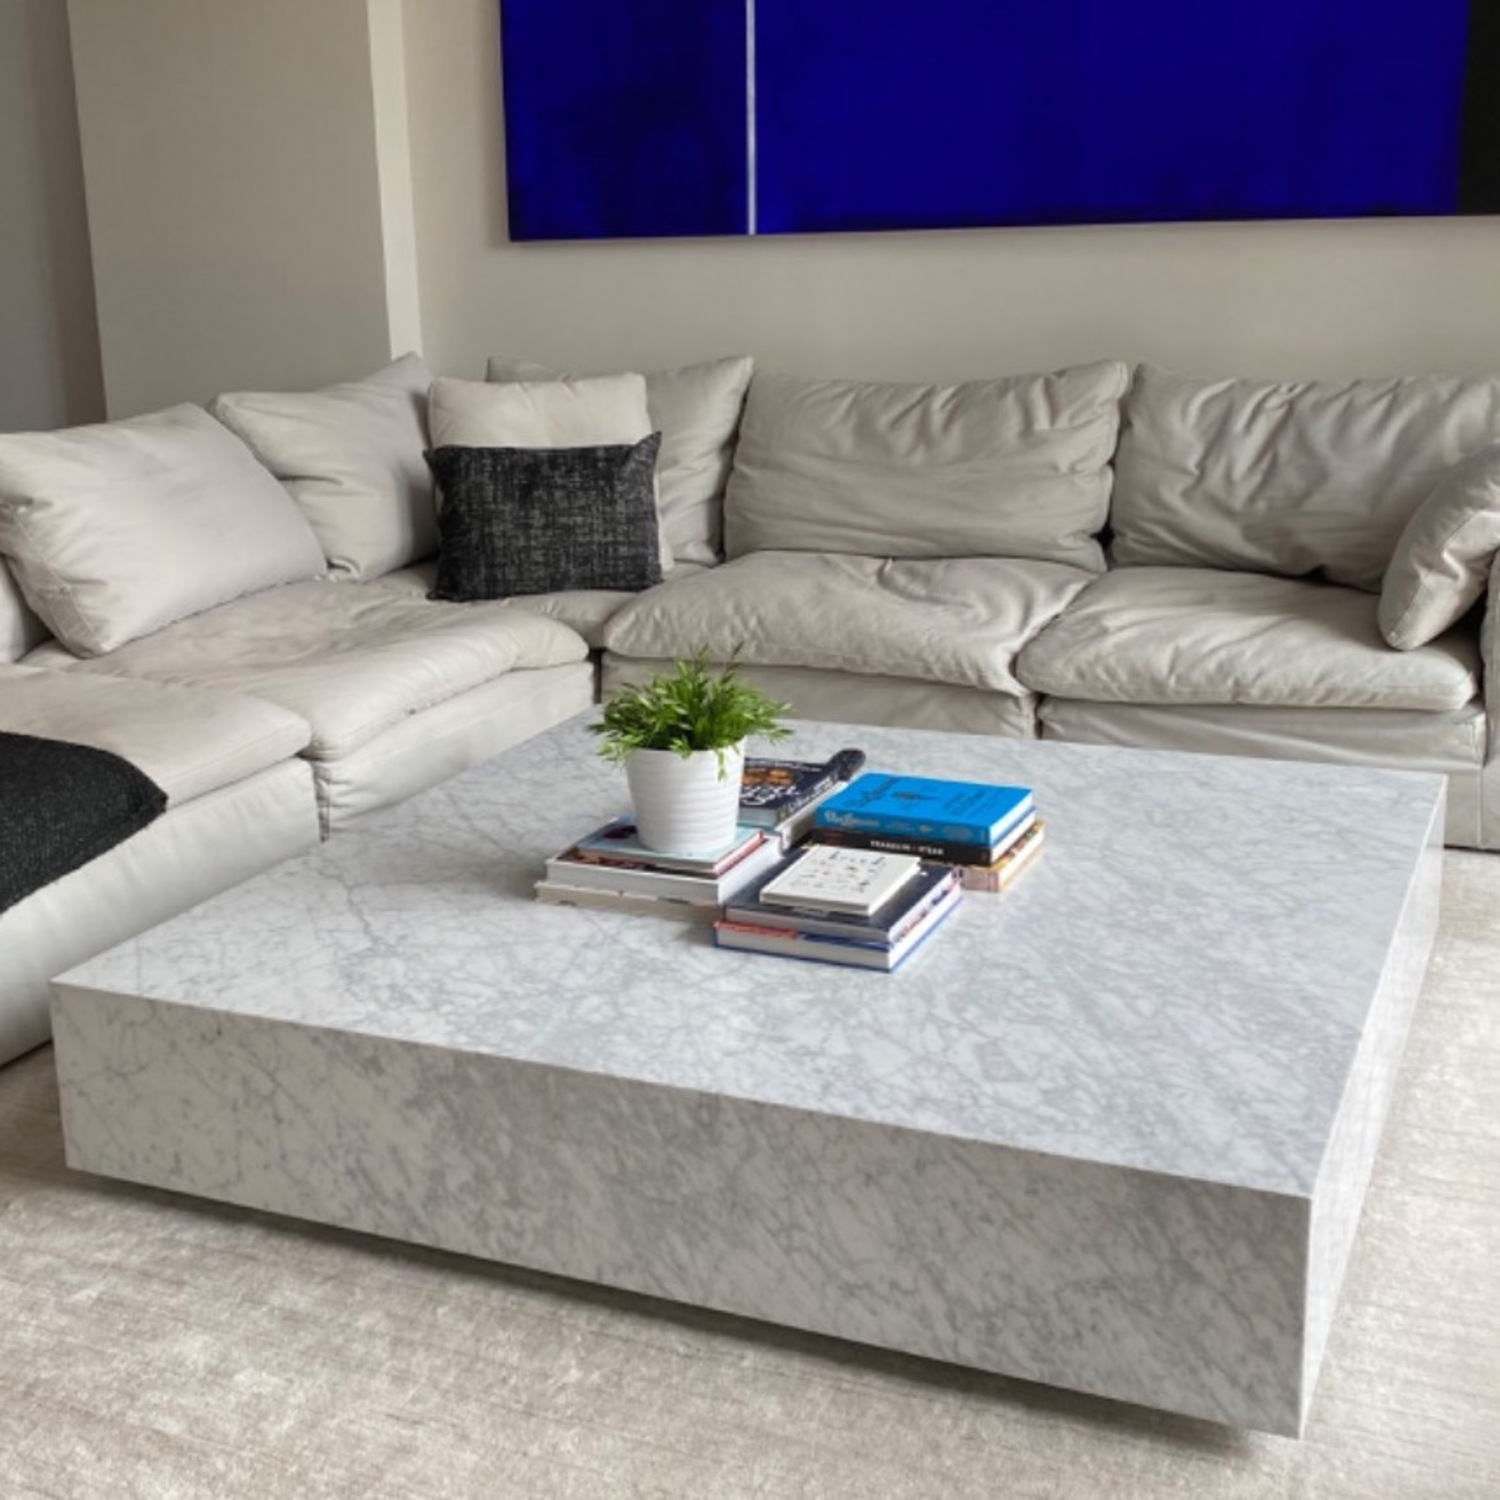 Restoration Hardware White Marble Coffee Table - image-1